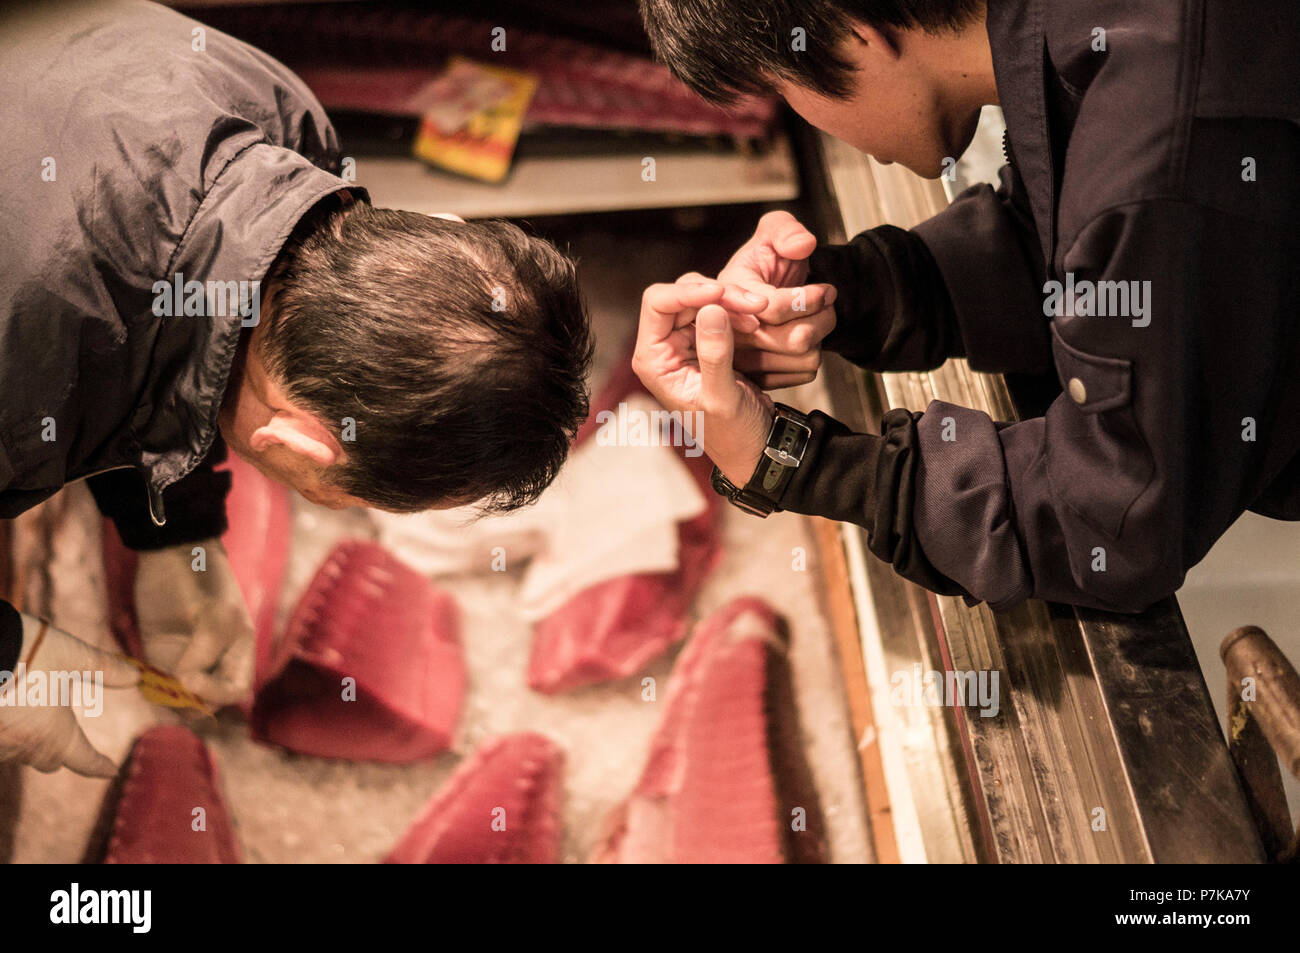 Two people bend over an drop-in freezer filled with fresh fish - Stock Image